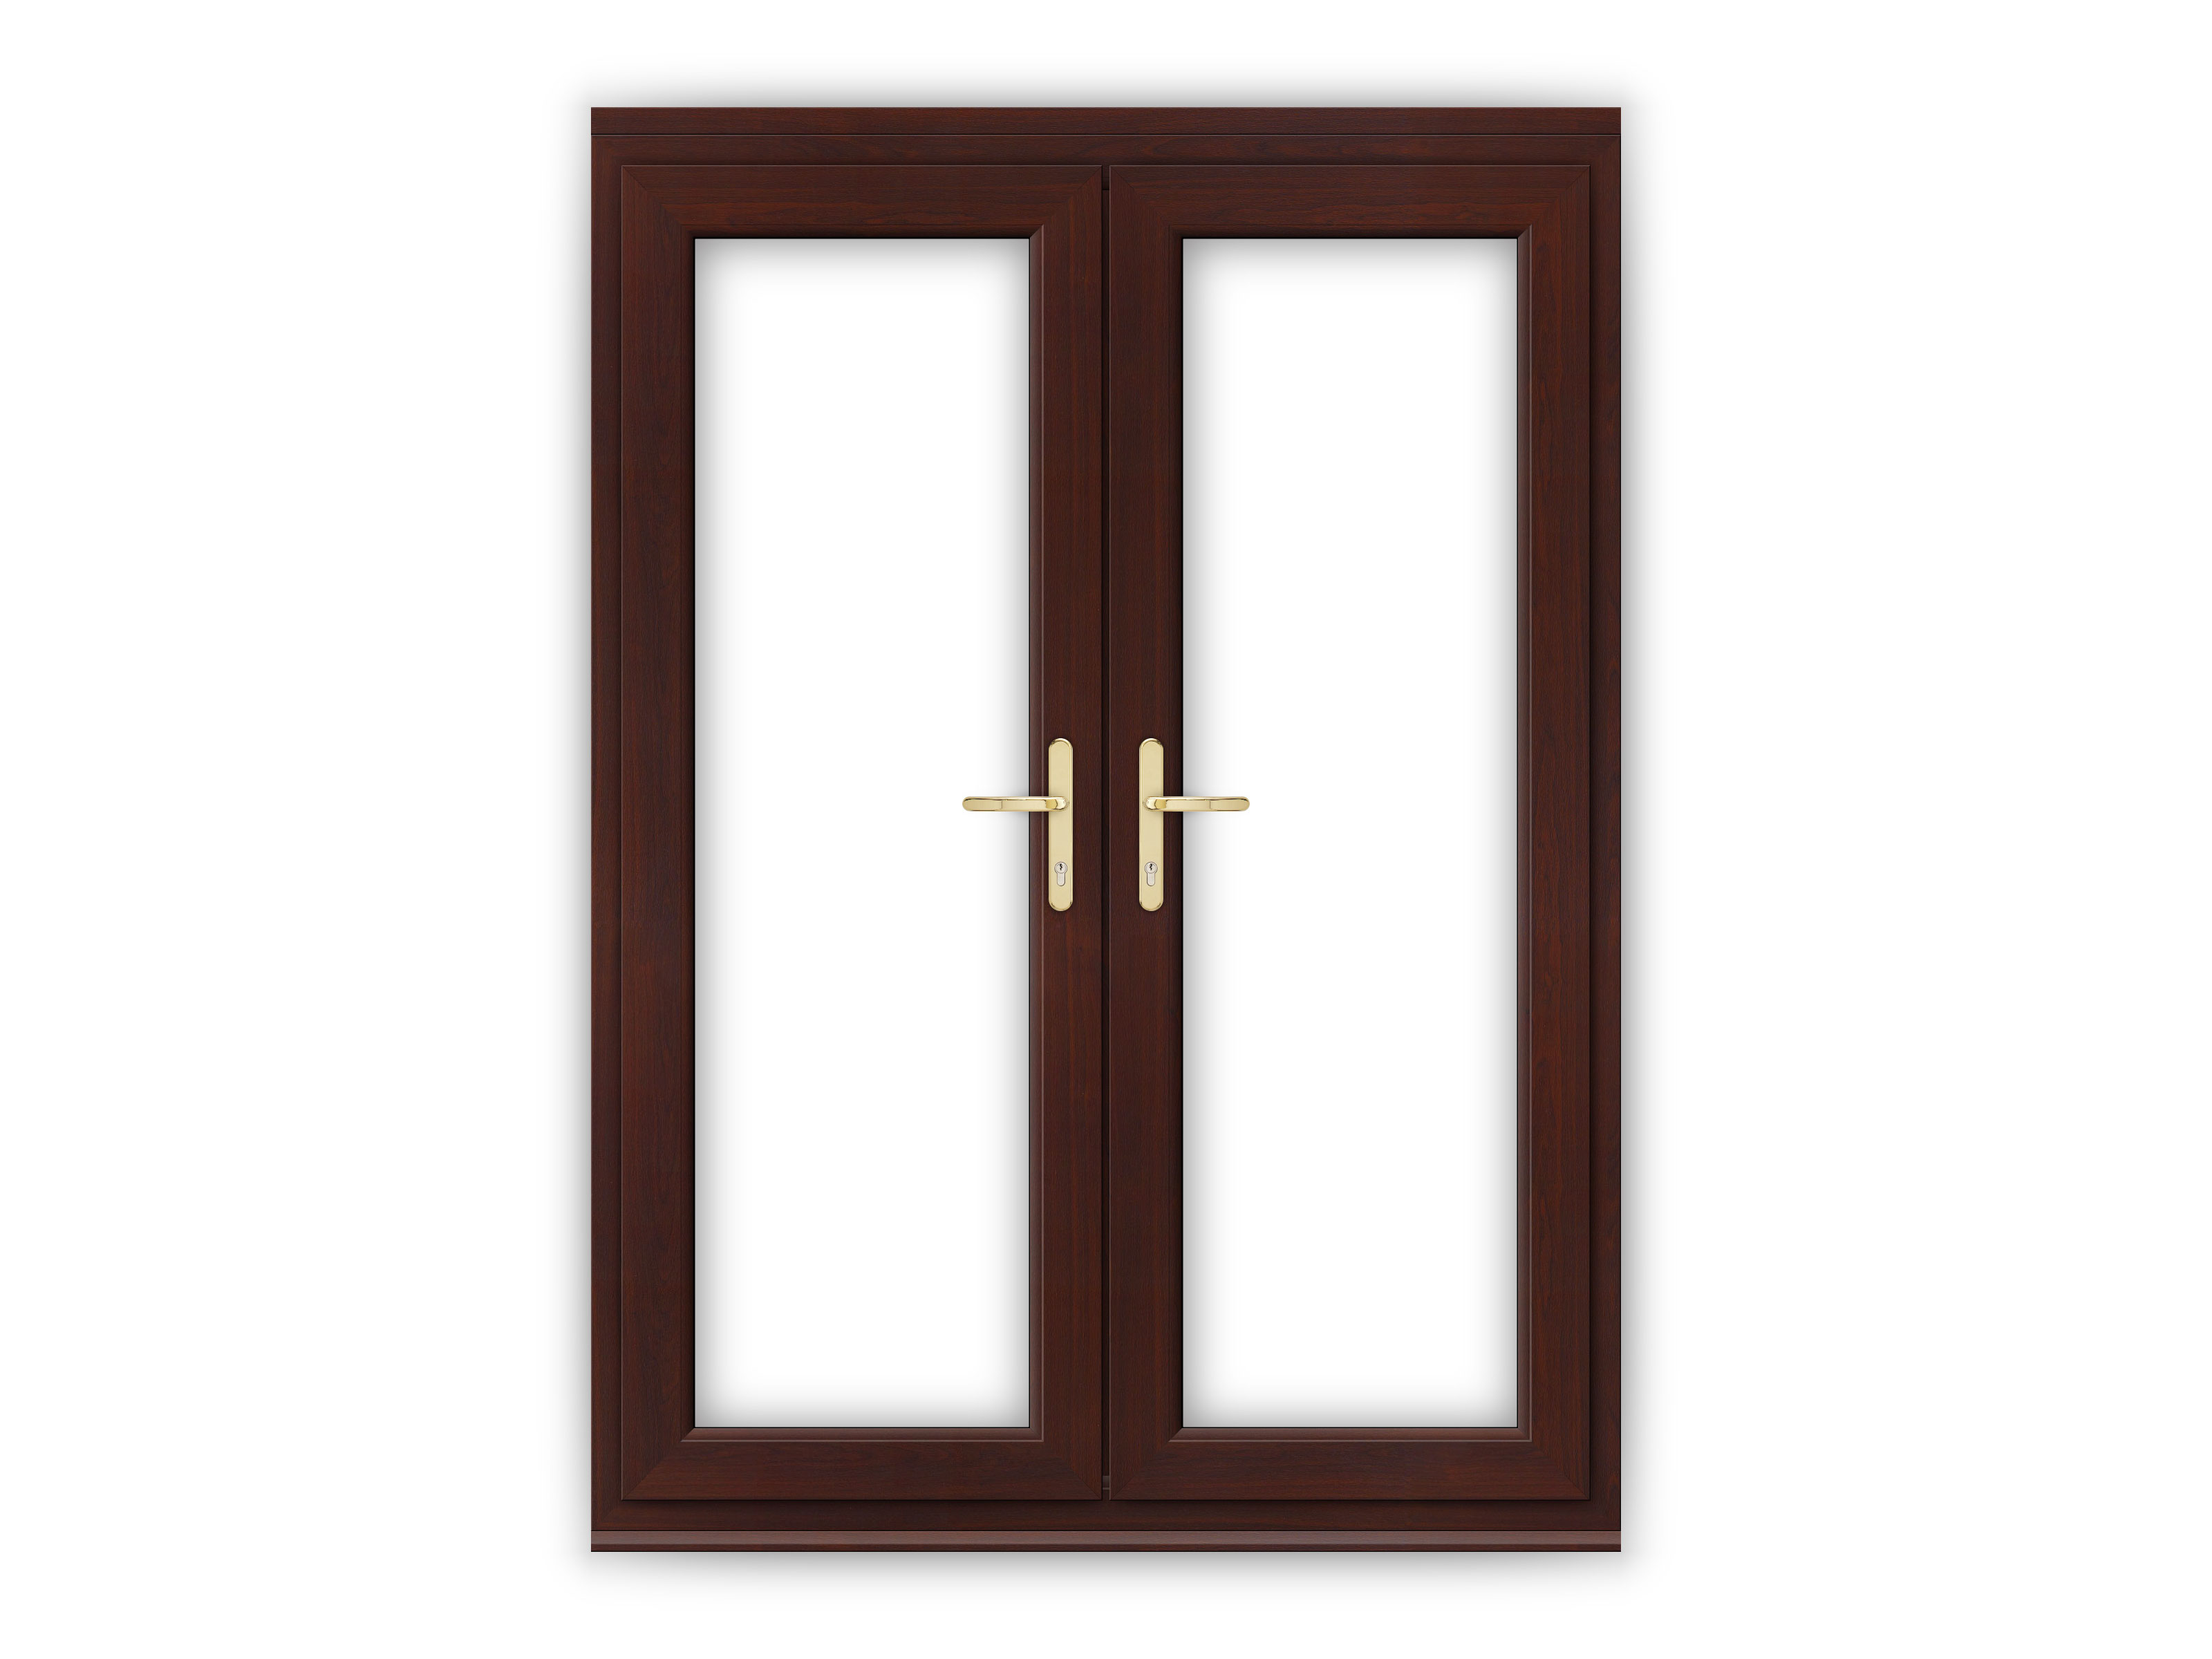 5ft rosewood upvc french doors flying doors for Upvc french doors 1790 x 2090mm